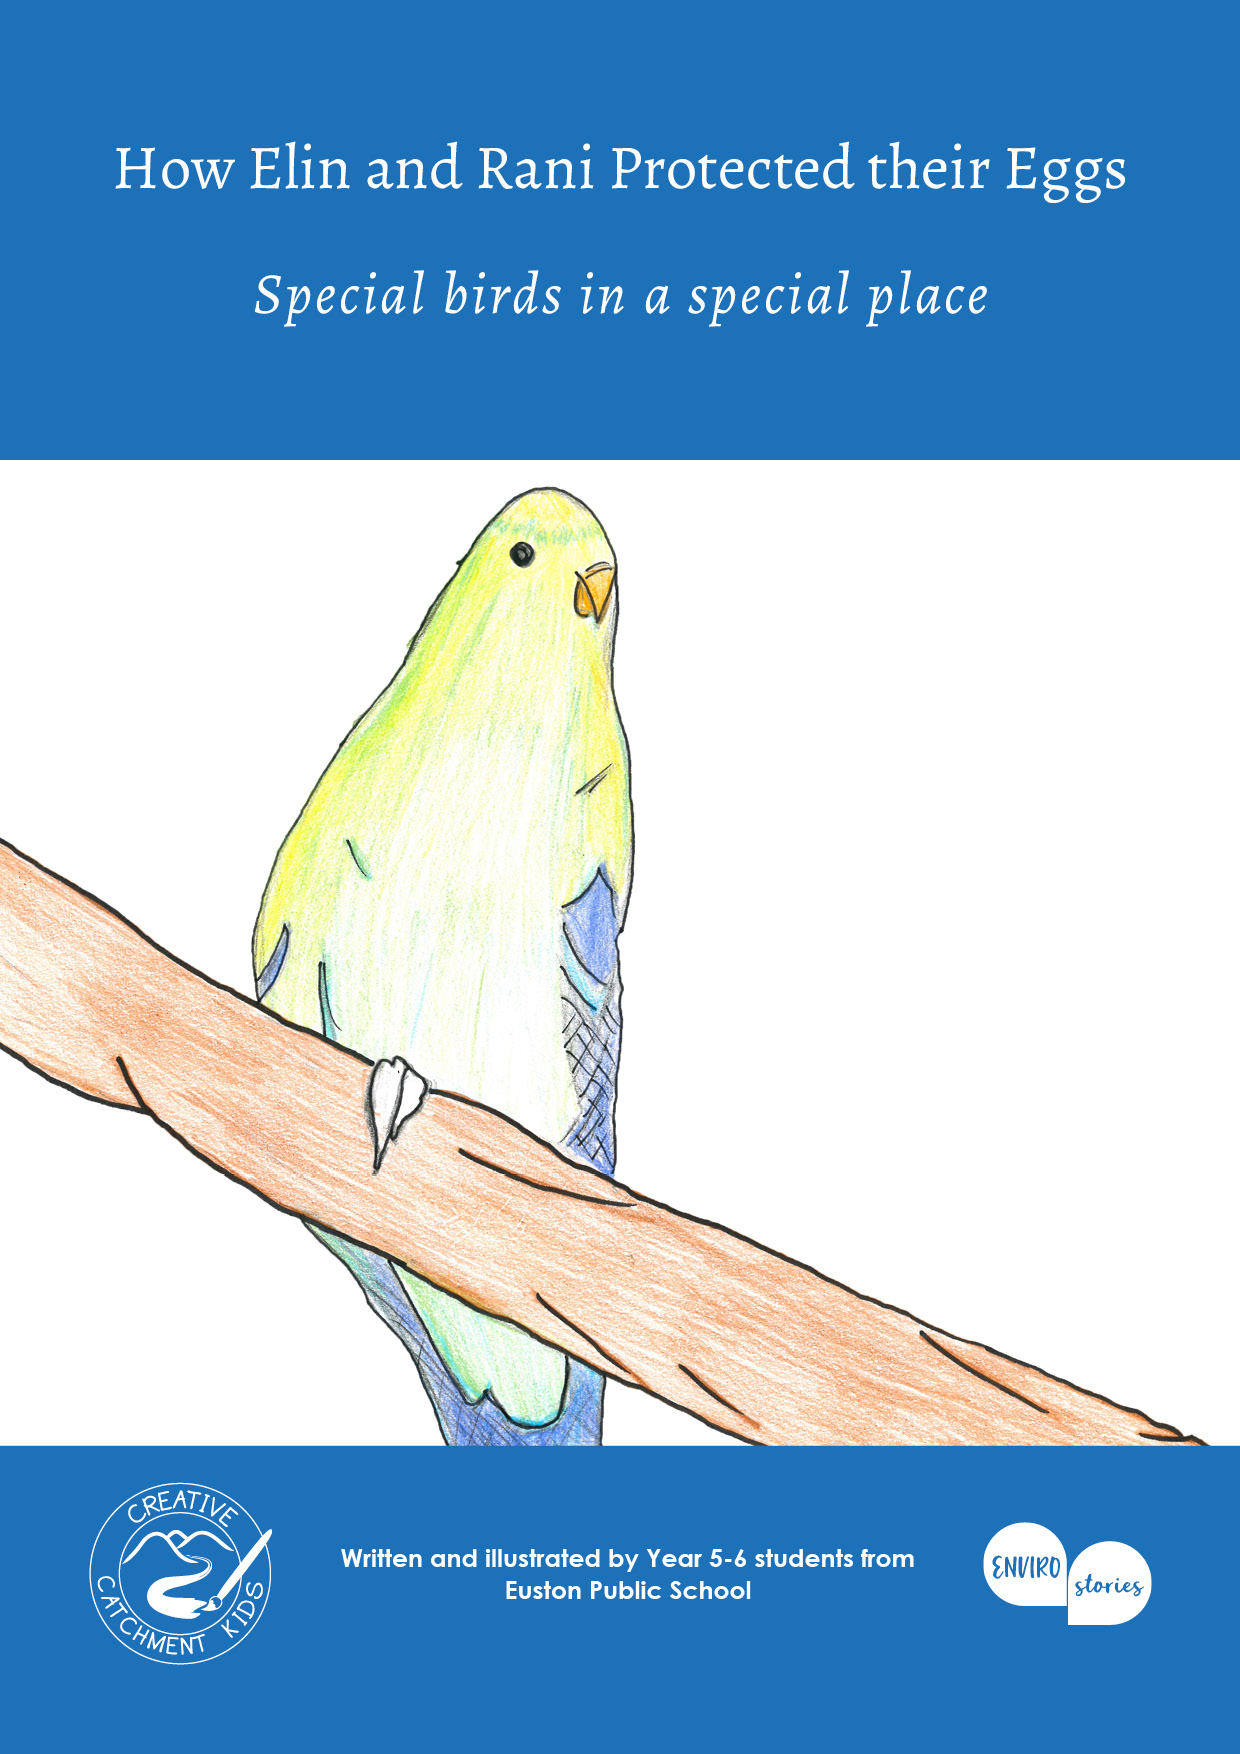 How Elin and Rani Protected their Eggs: Special birds in a special place